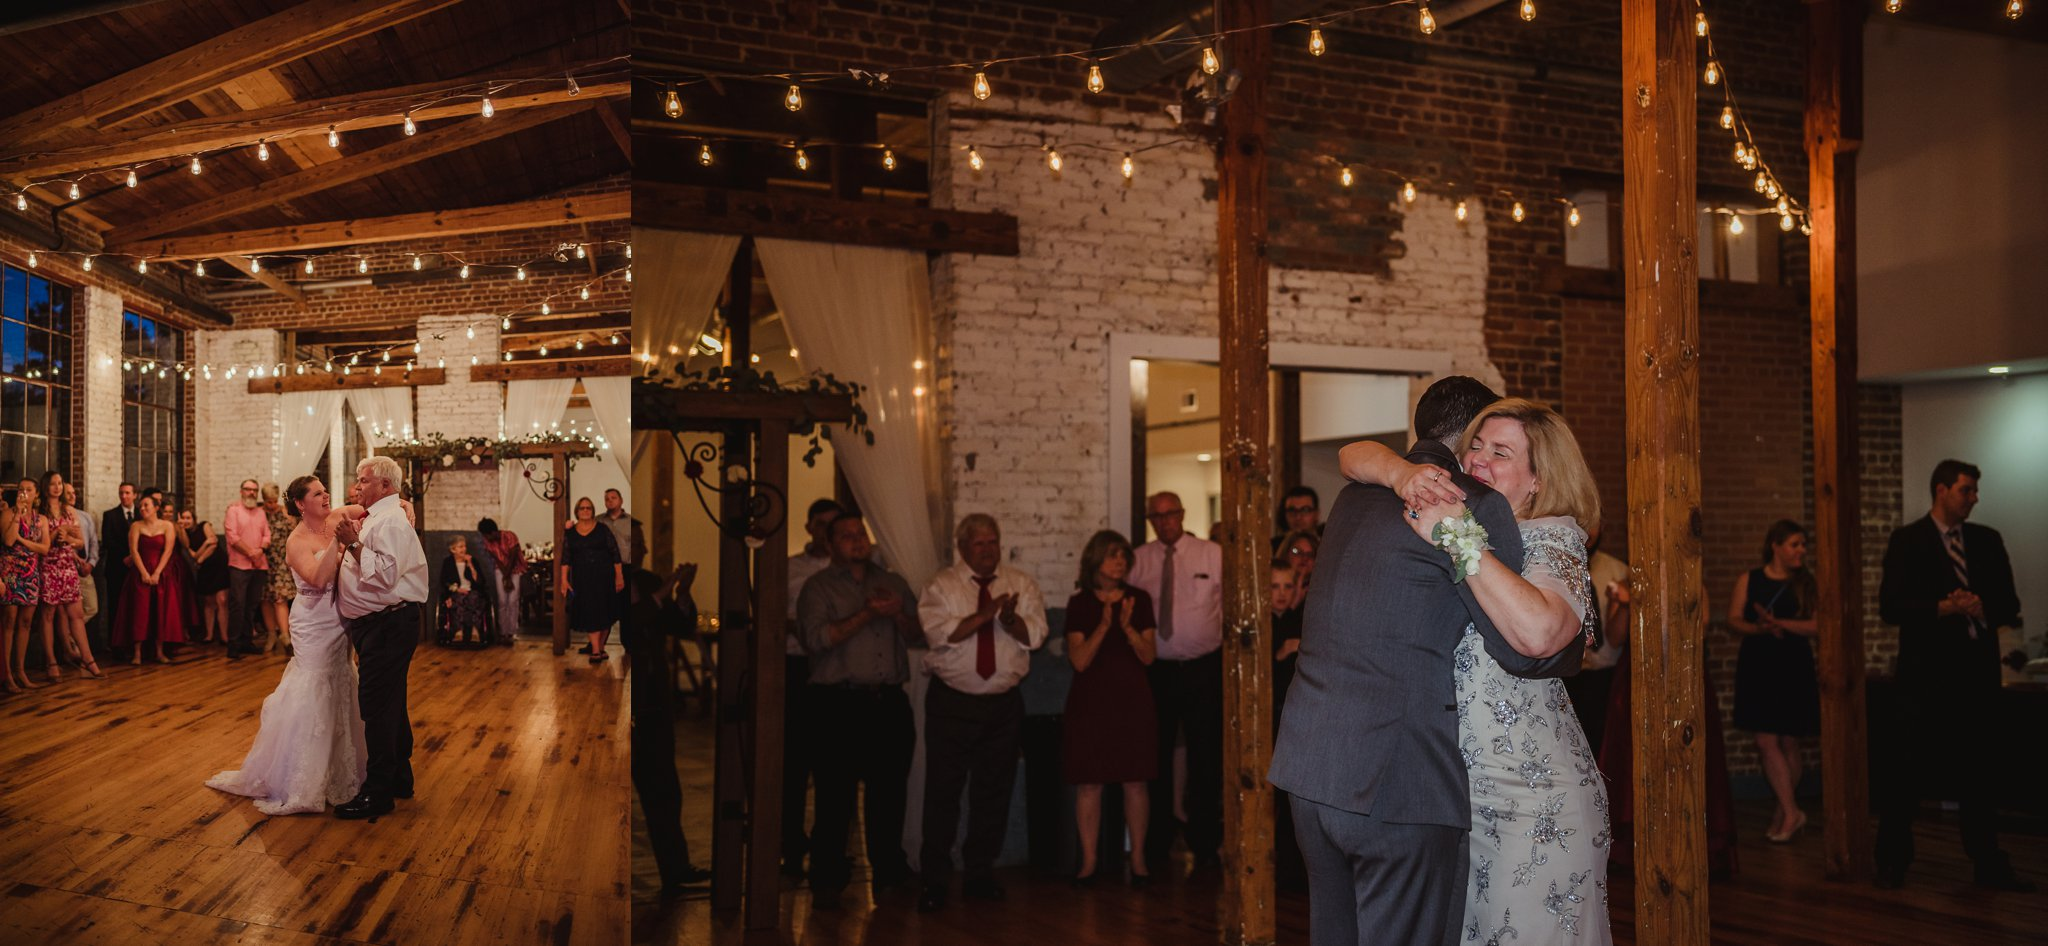 The bride and groom danced with their parents at their wedding reception in Raleigh, North Carolina, pictures by Rose Trail Images.